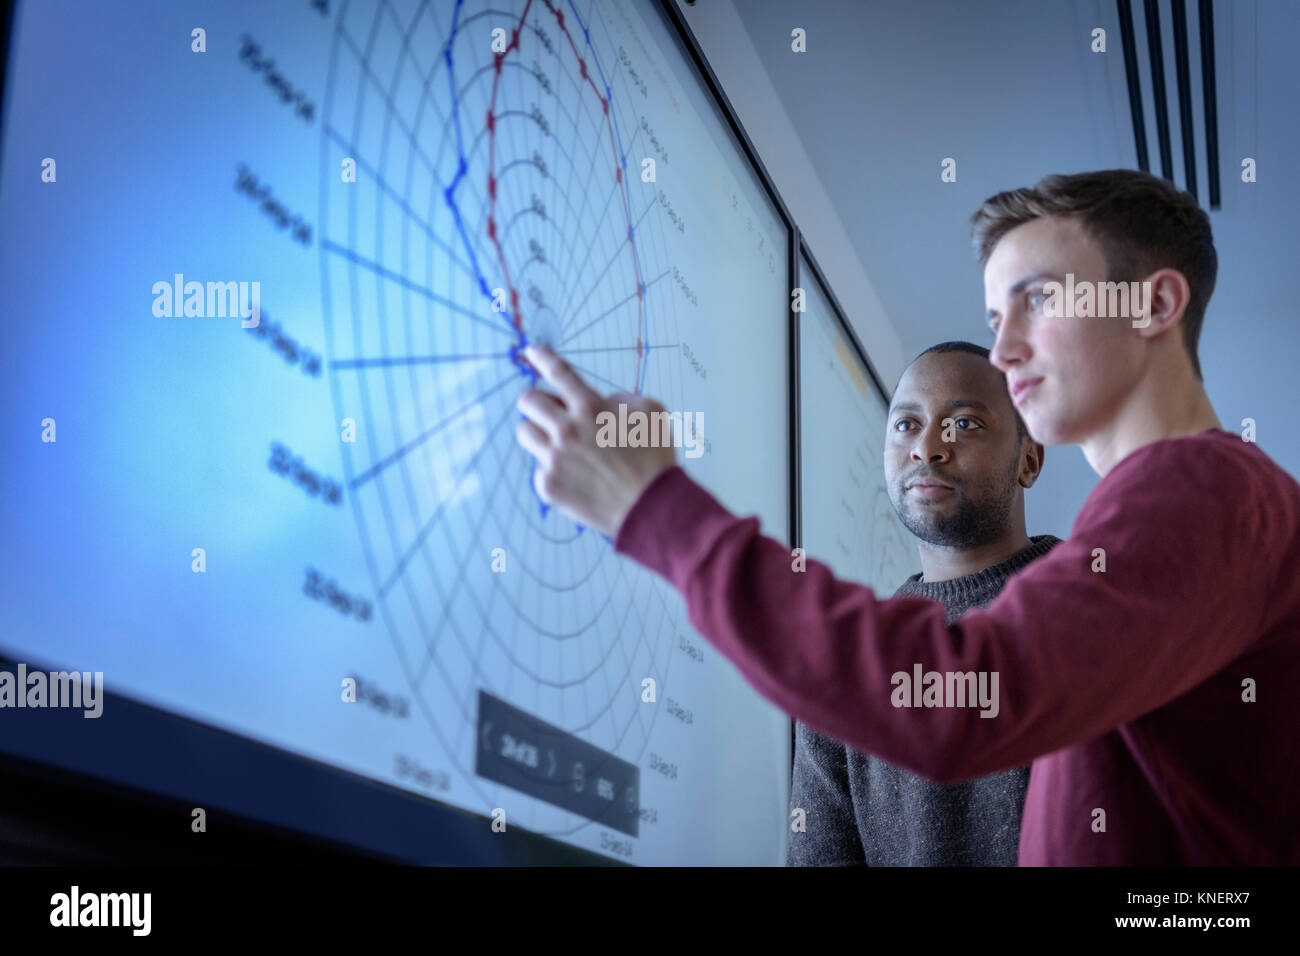 Teacher and apprentice studying graphical screen display in railway engineering facility - Stock Image